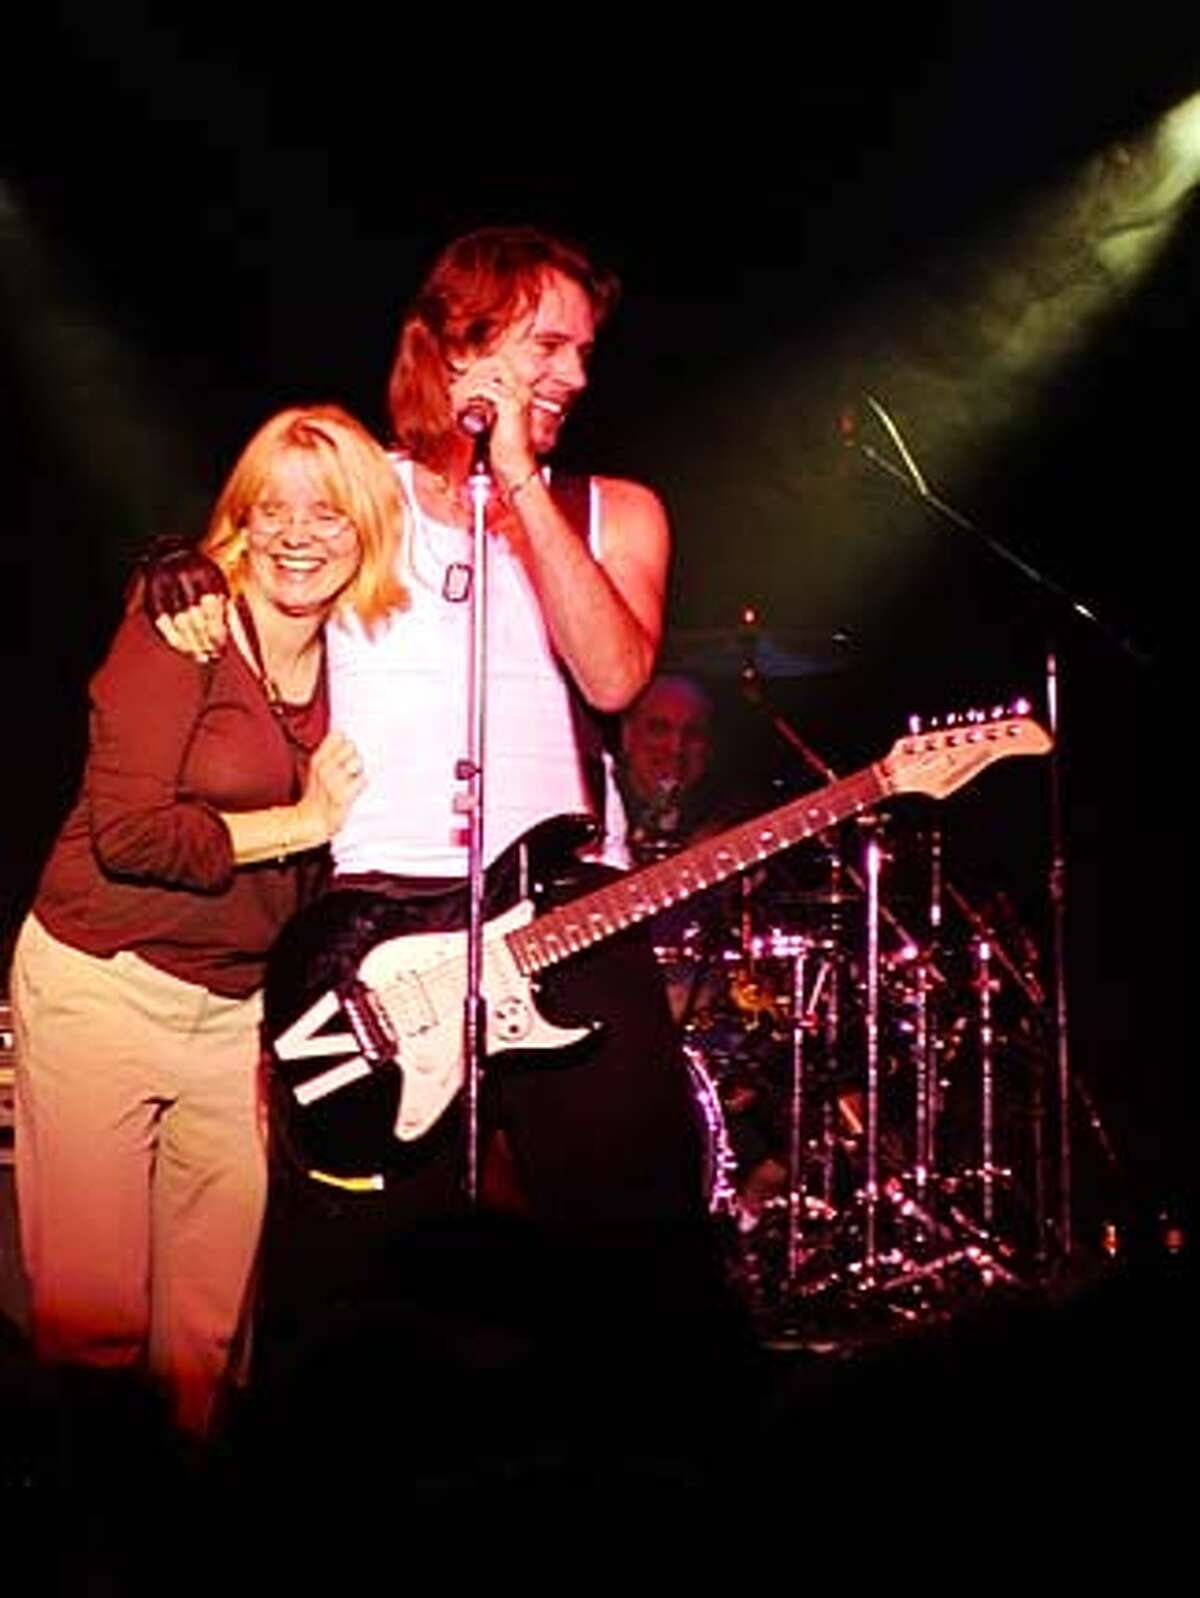 / for: Friday Rita Butzer Carpenter of Palo Alto and Rick Springfield onstage during a concert at Feather Falls Casino in Oroville, Calif. on October 10, 2003. Butzer Carpenter is a member of Springfield's Shock Street Team, a grass-roots effort to promote his new album.